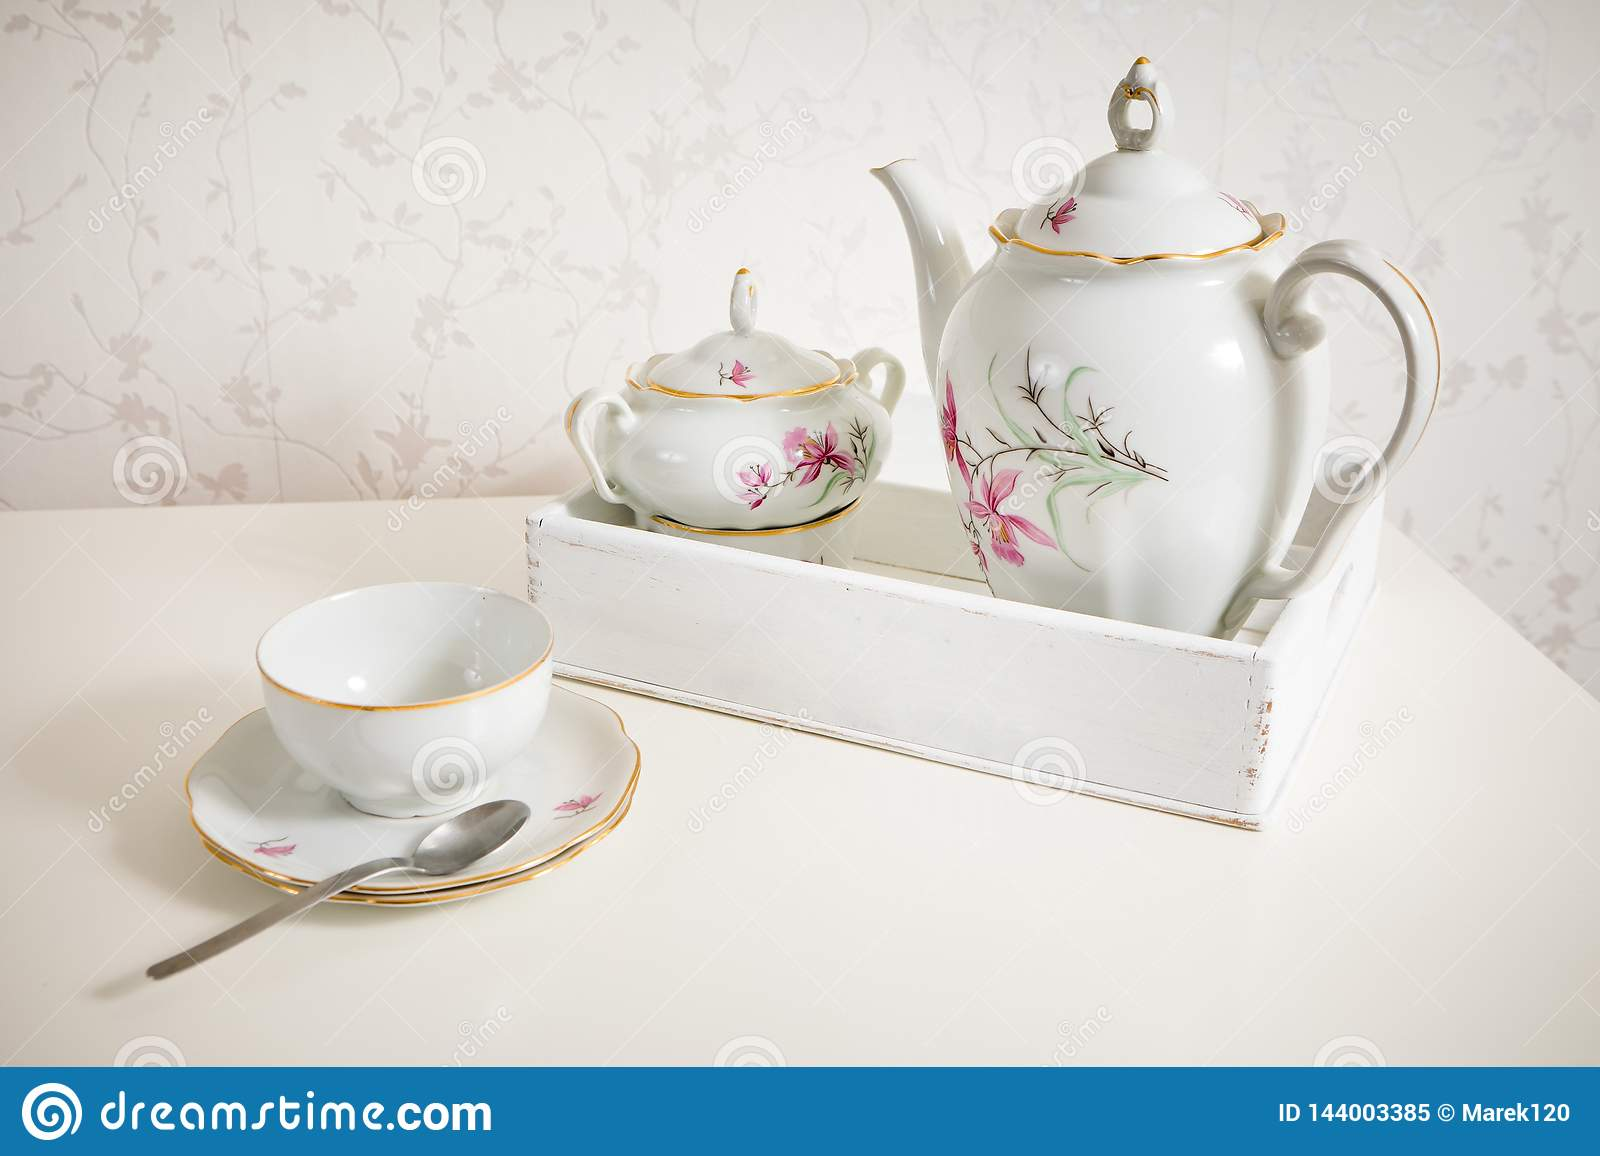 White tea service on white commode ready for use. Start a morning with cup of tea or coffee